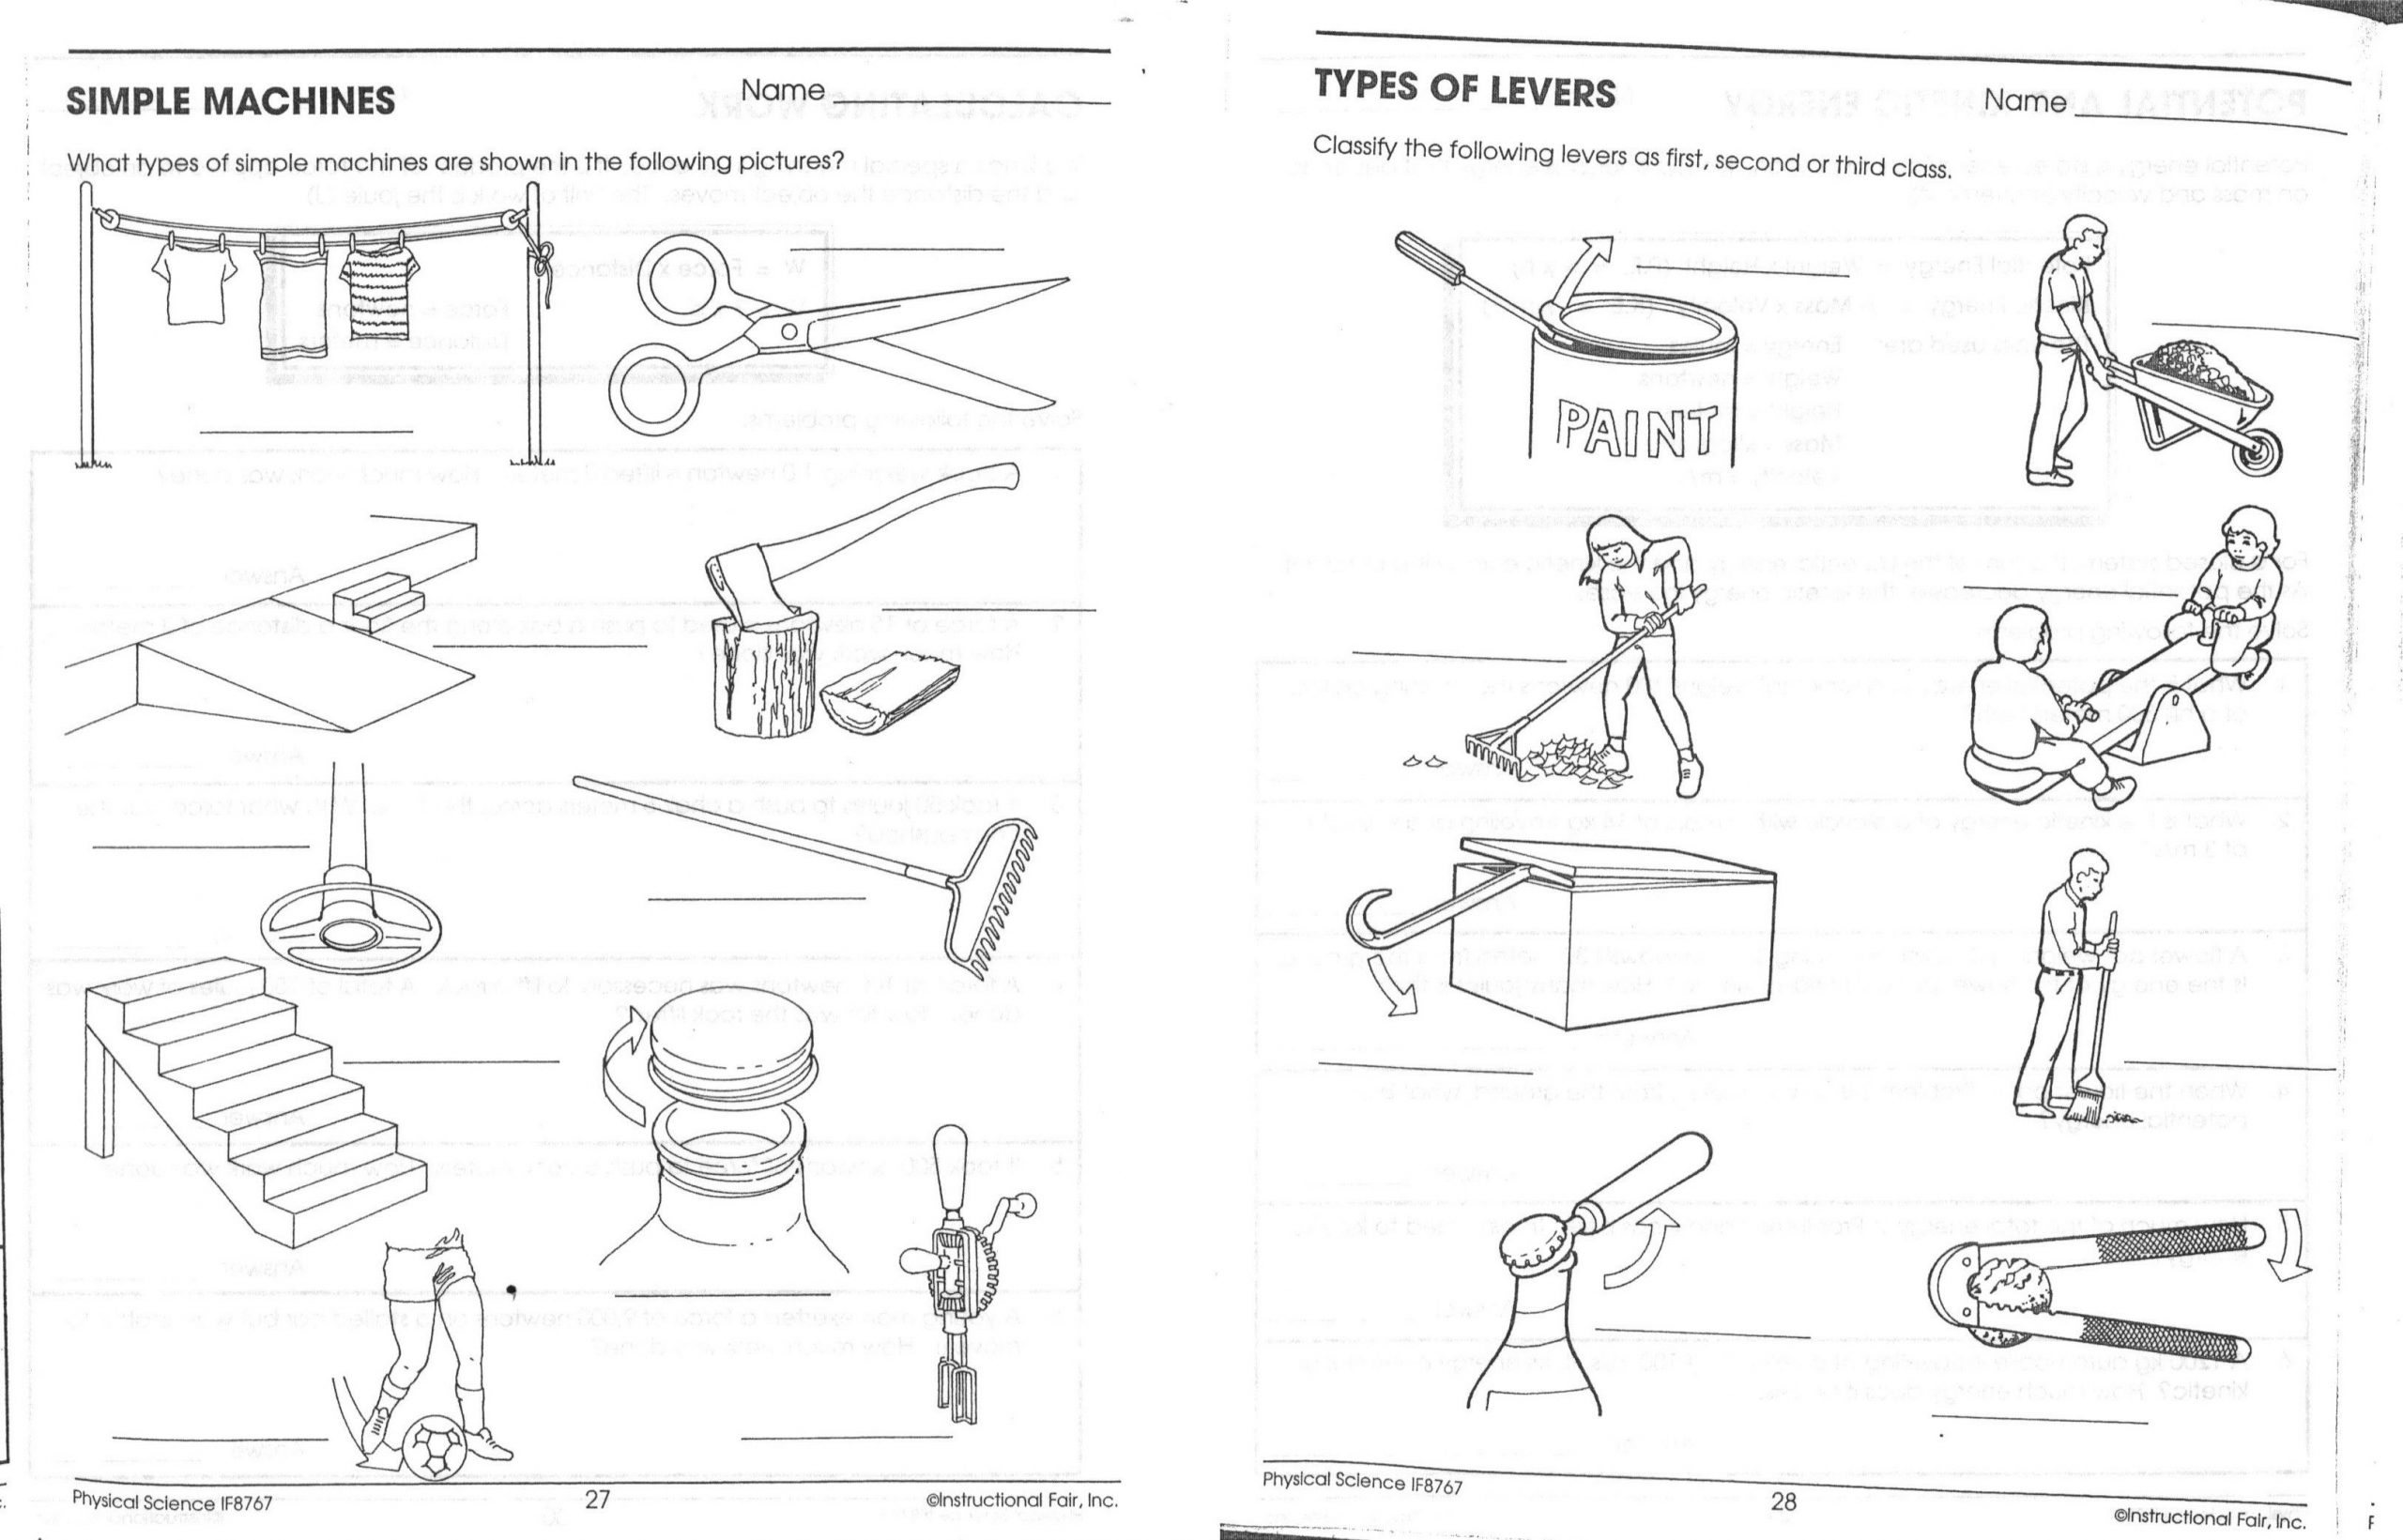 Energy Worksheets for 2nd Grade Potential Kinetic Energy Worksheet 1 Jpg 3 251—2 084 Pixels